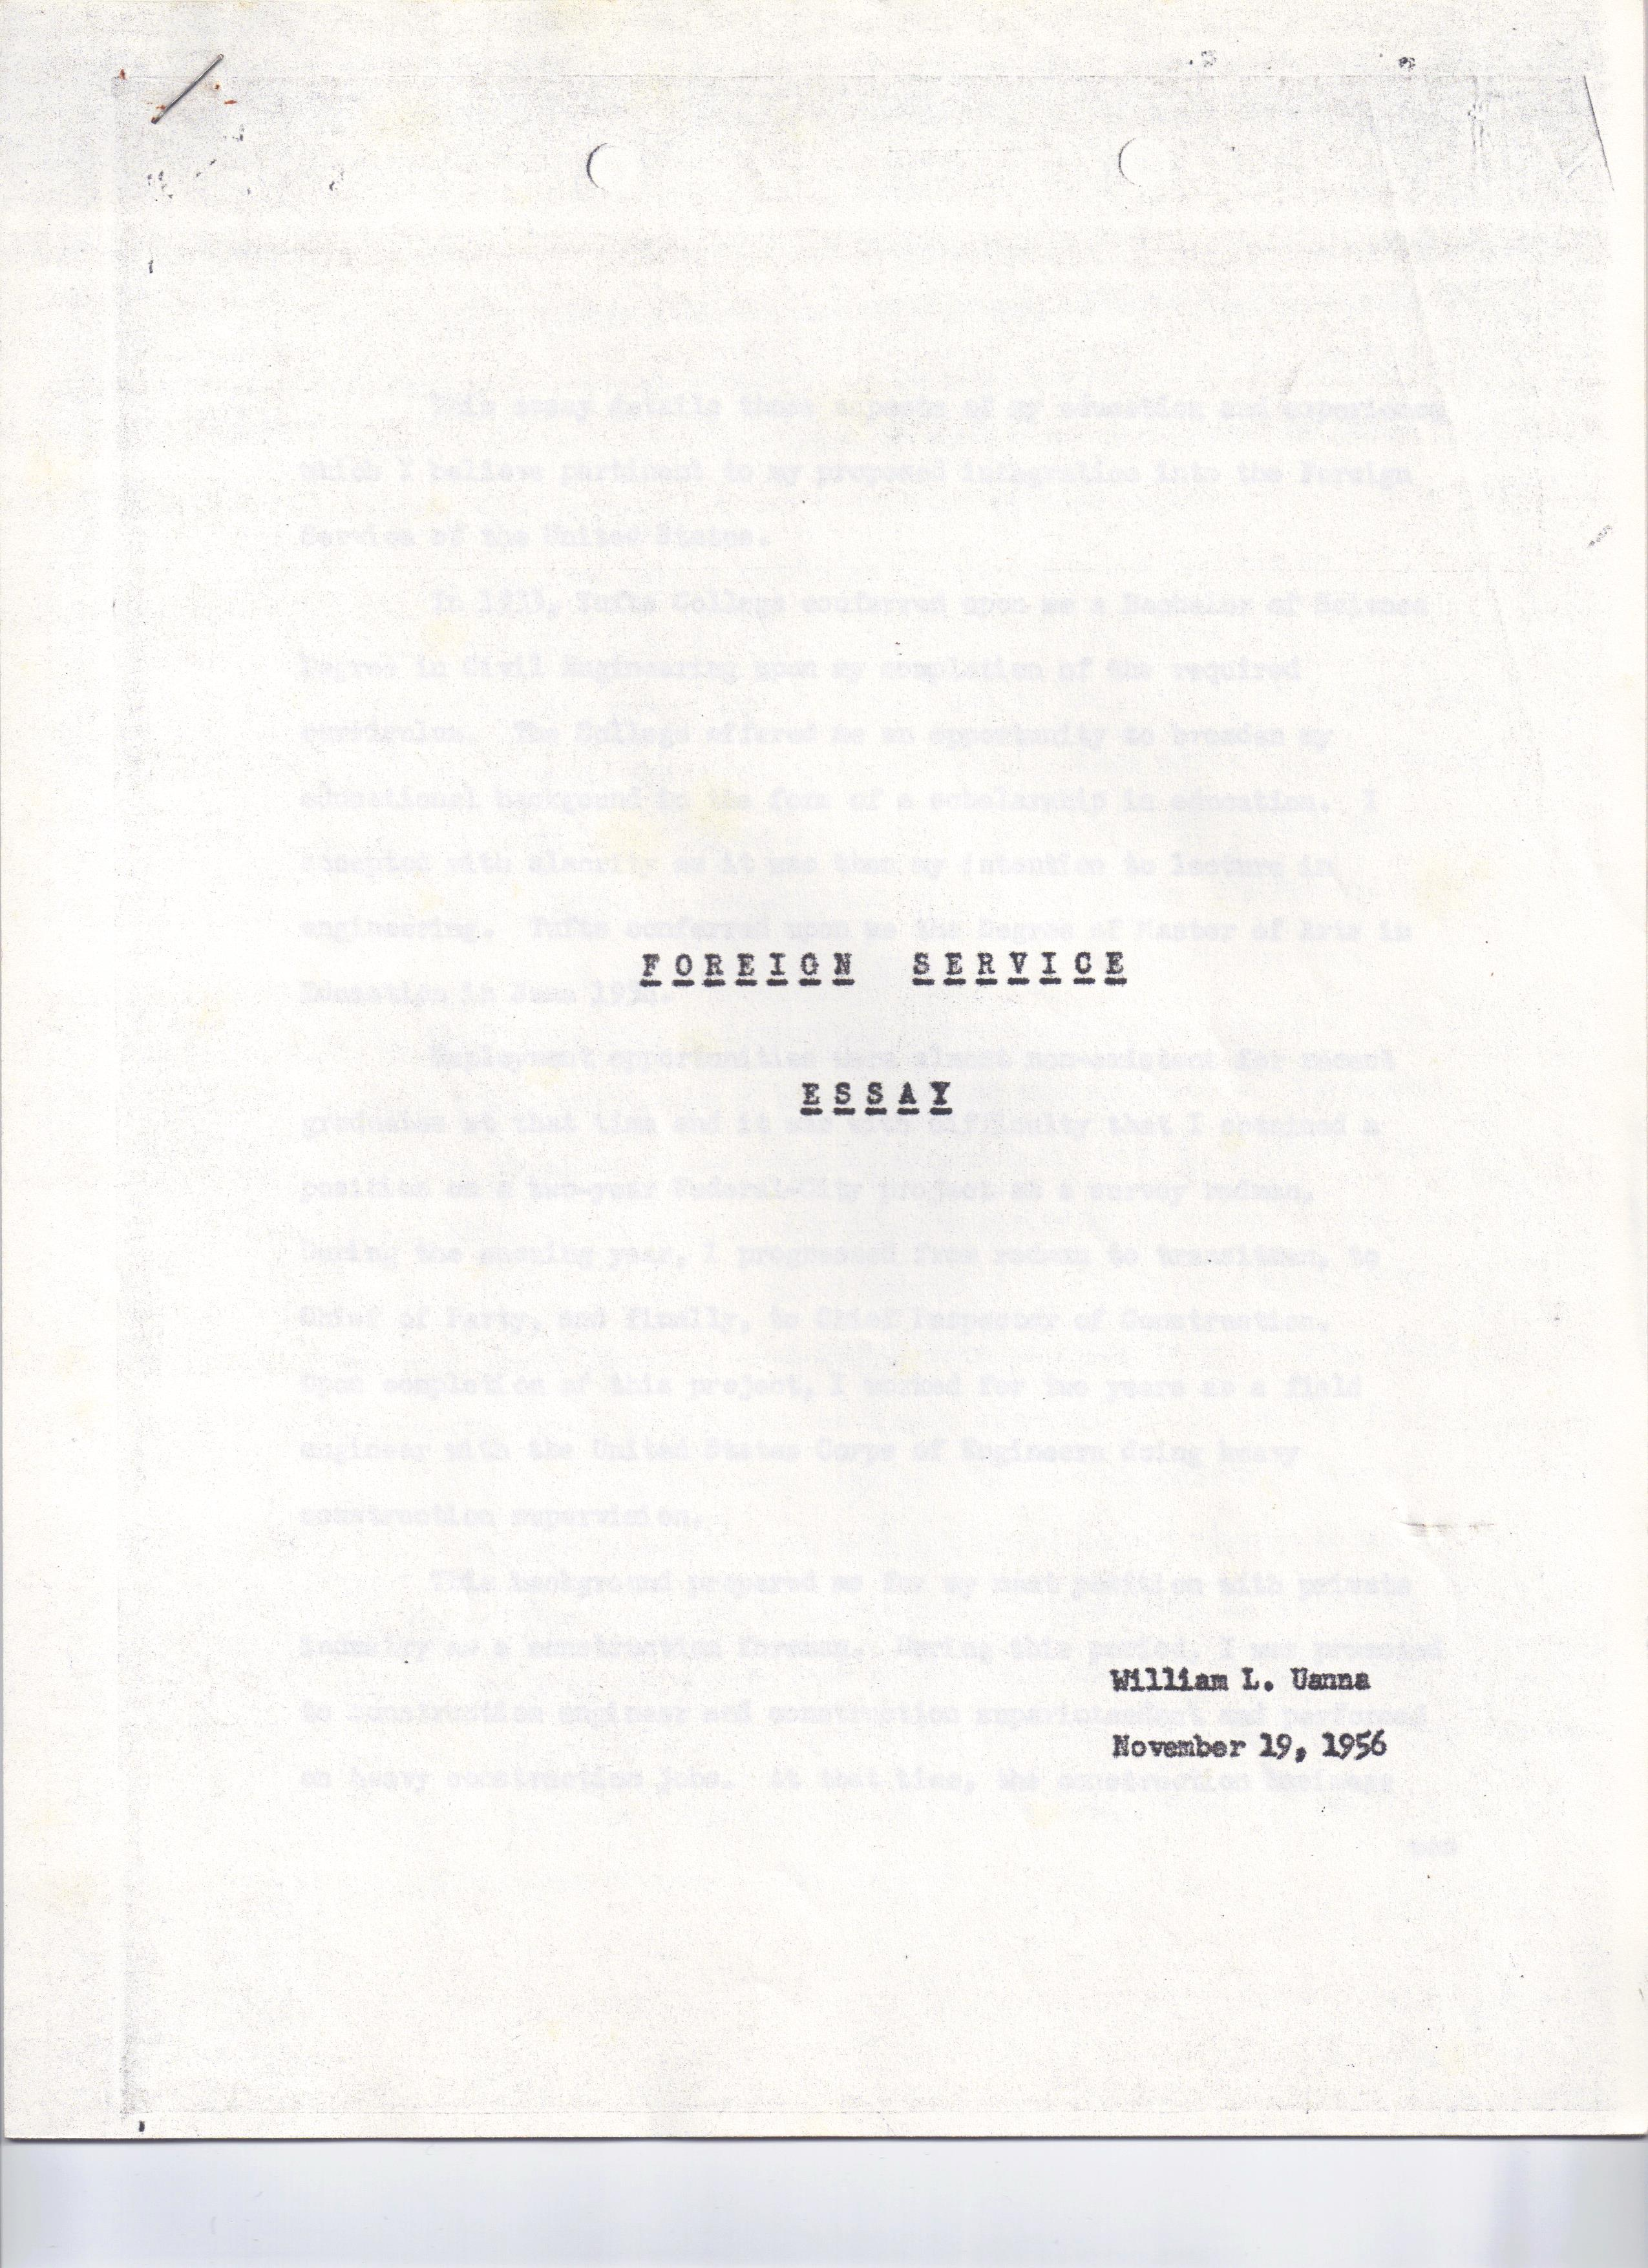 005 Essay Example Cover Letter For Bud Uanna Foreign Service November 19 1956